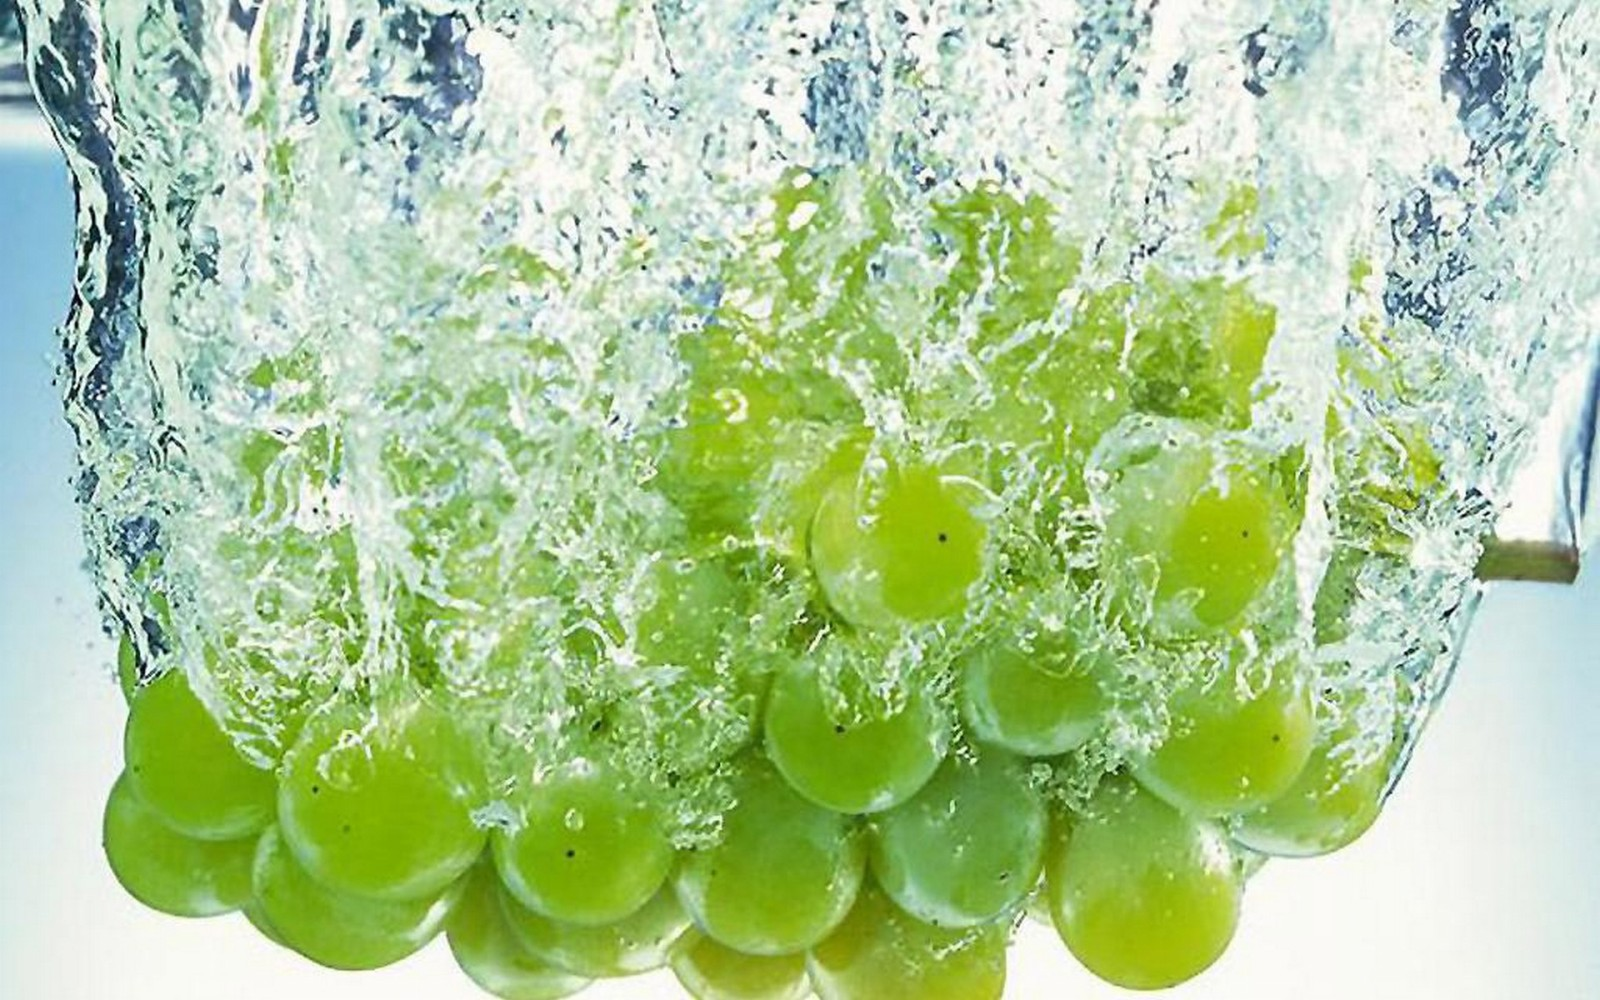 Beautiful fruits wallpapers - Grapes Fruit Photo 9